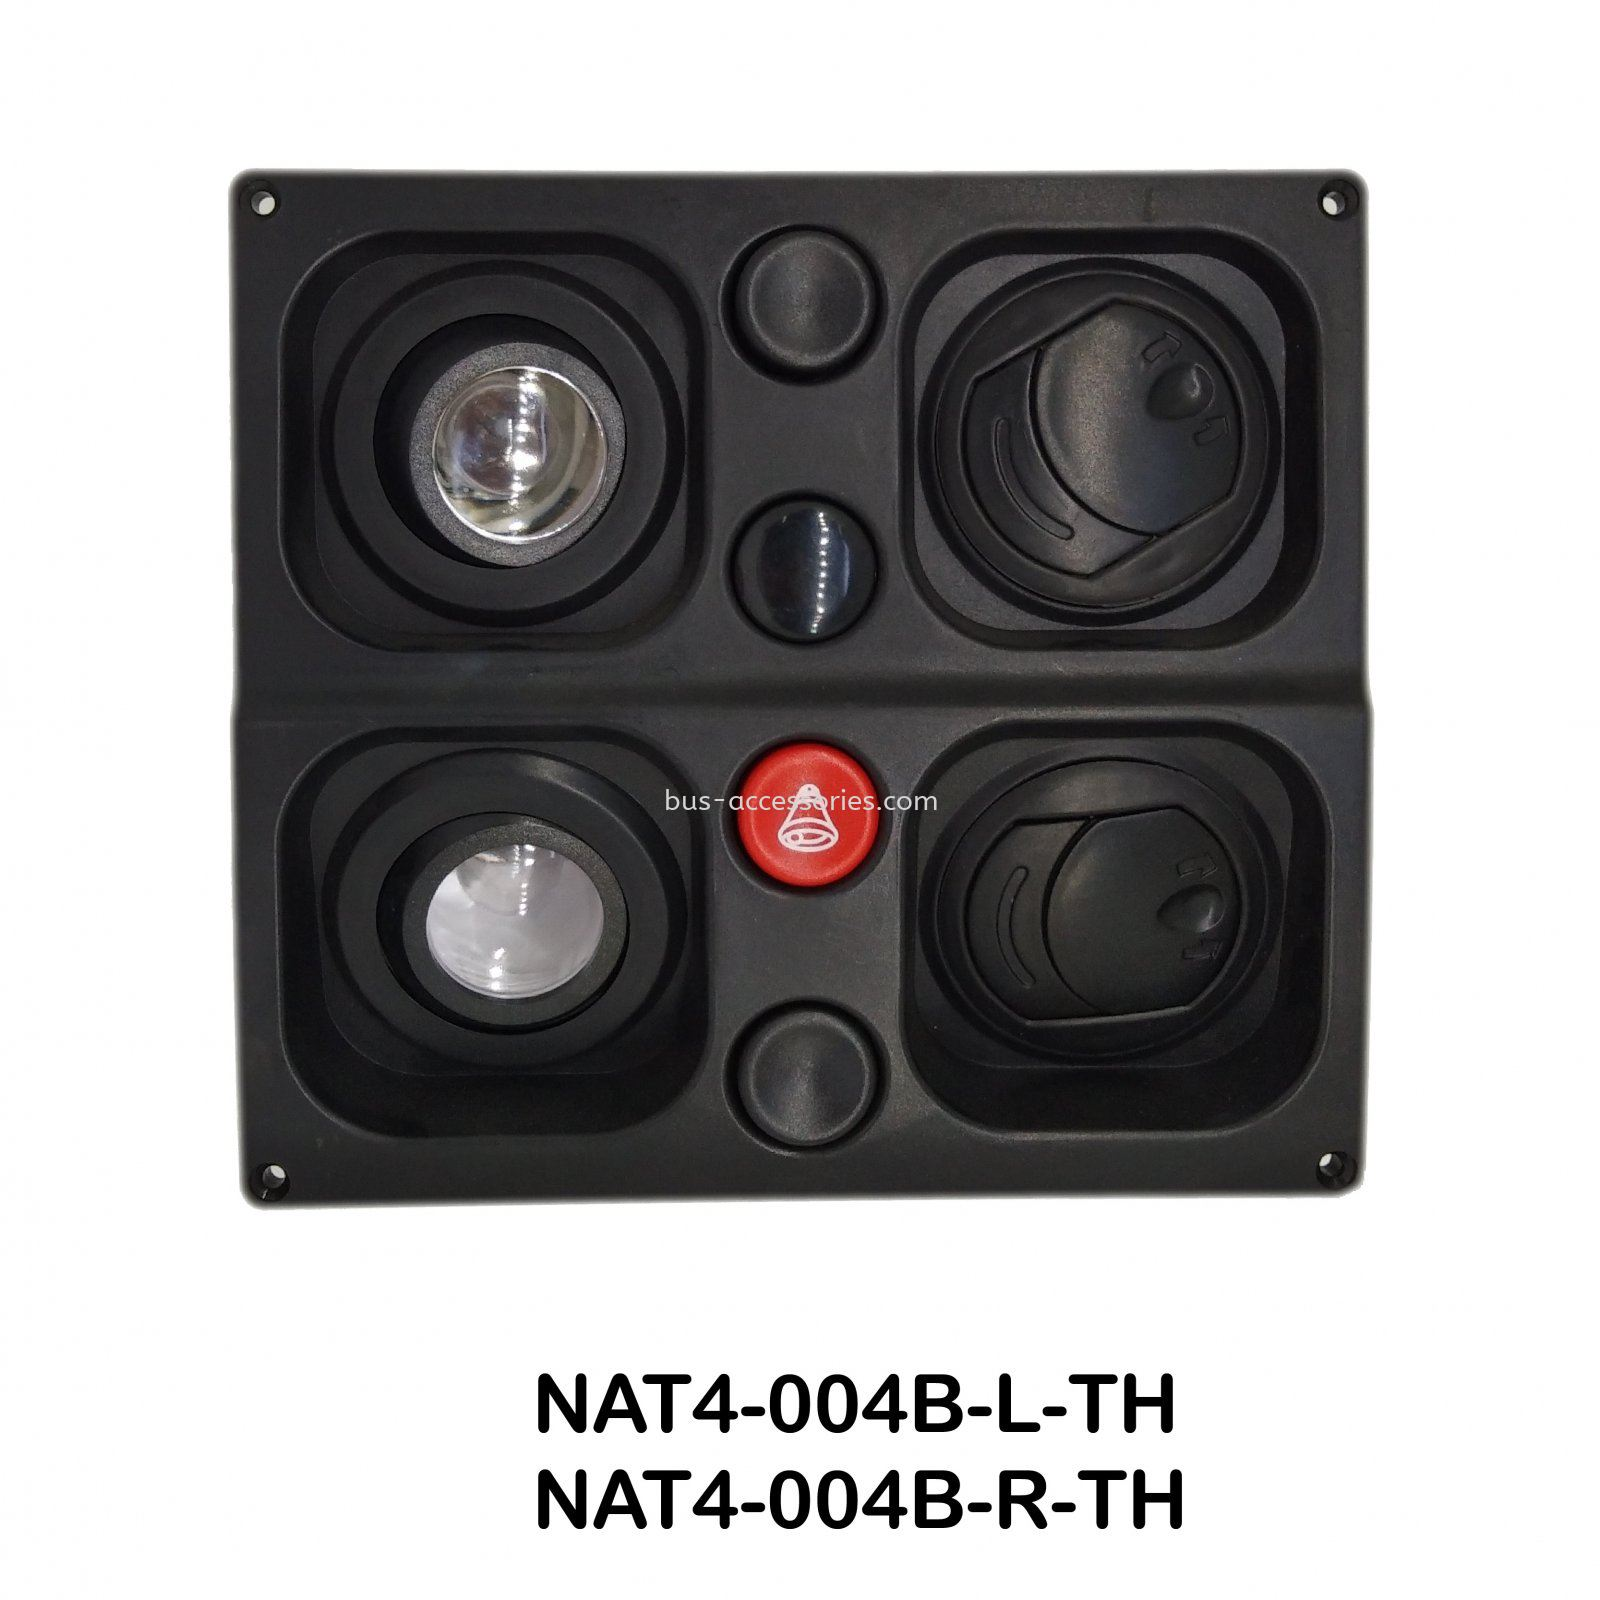 AIRCOND LOUVERS DOUBLE (BLACK) Auto interior parts bus wind outlet air vent louver with reading light Malaysia Singapore India Indonesia Thailand